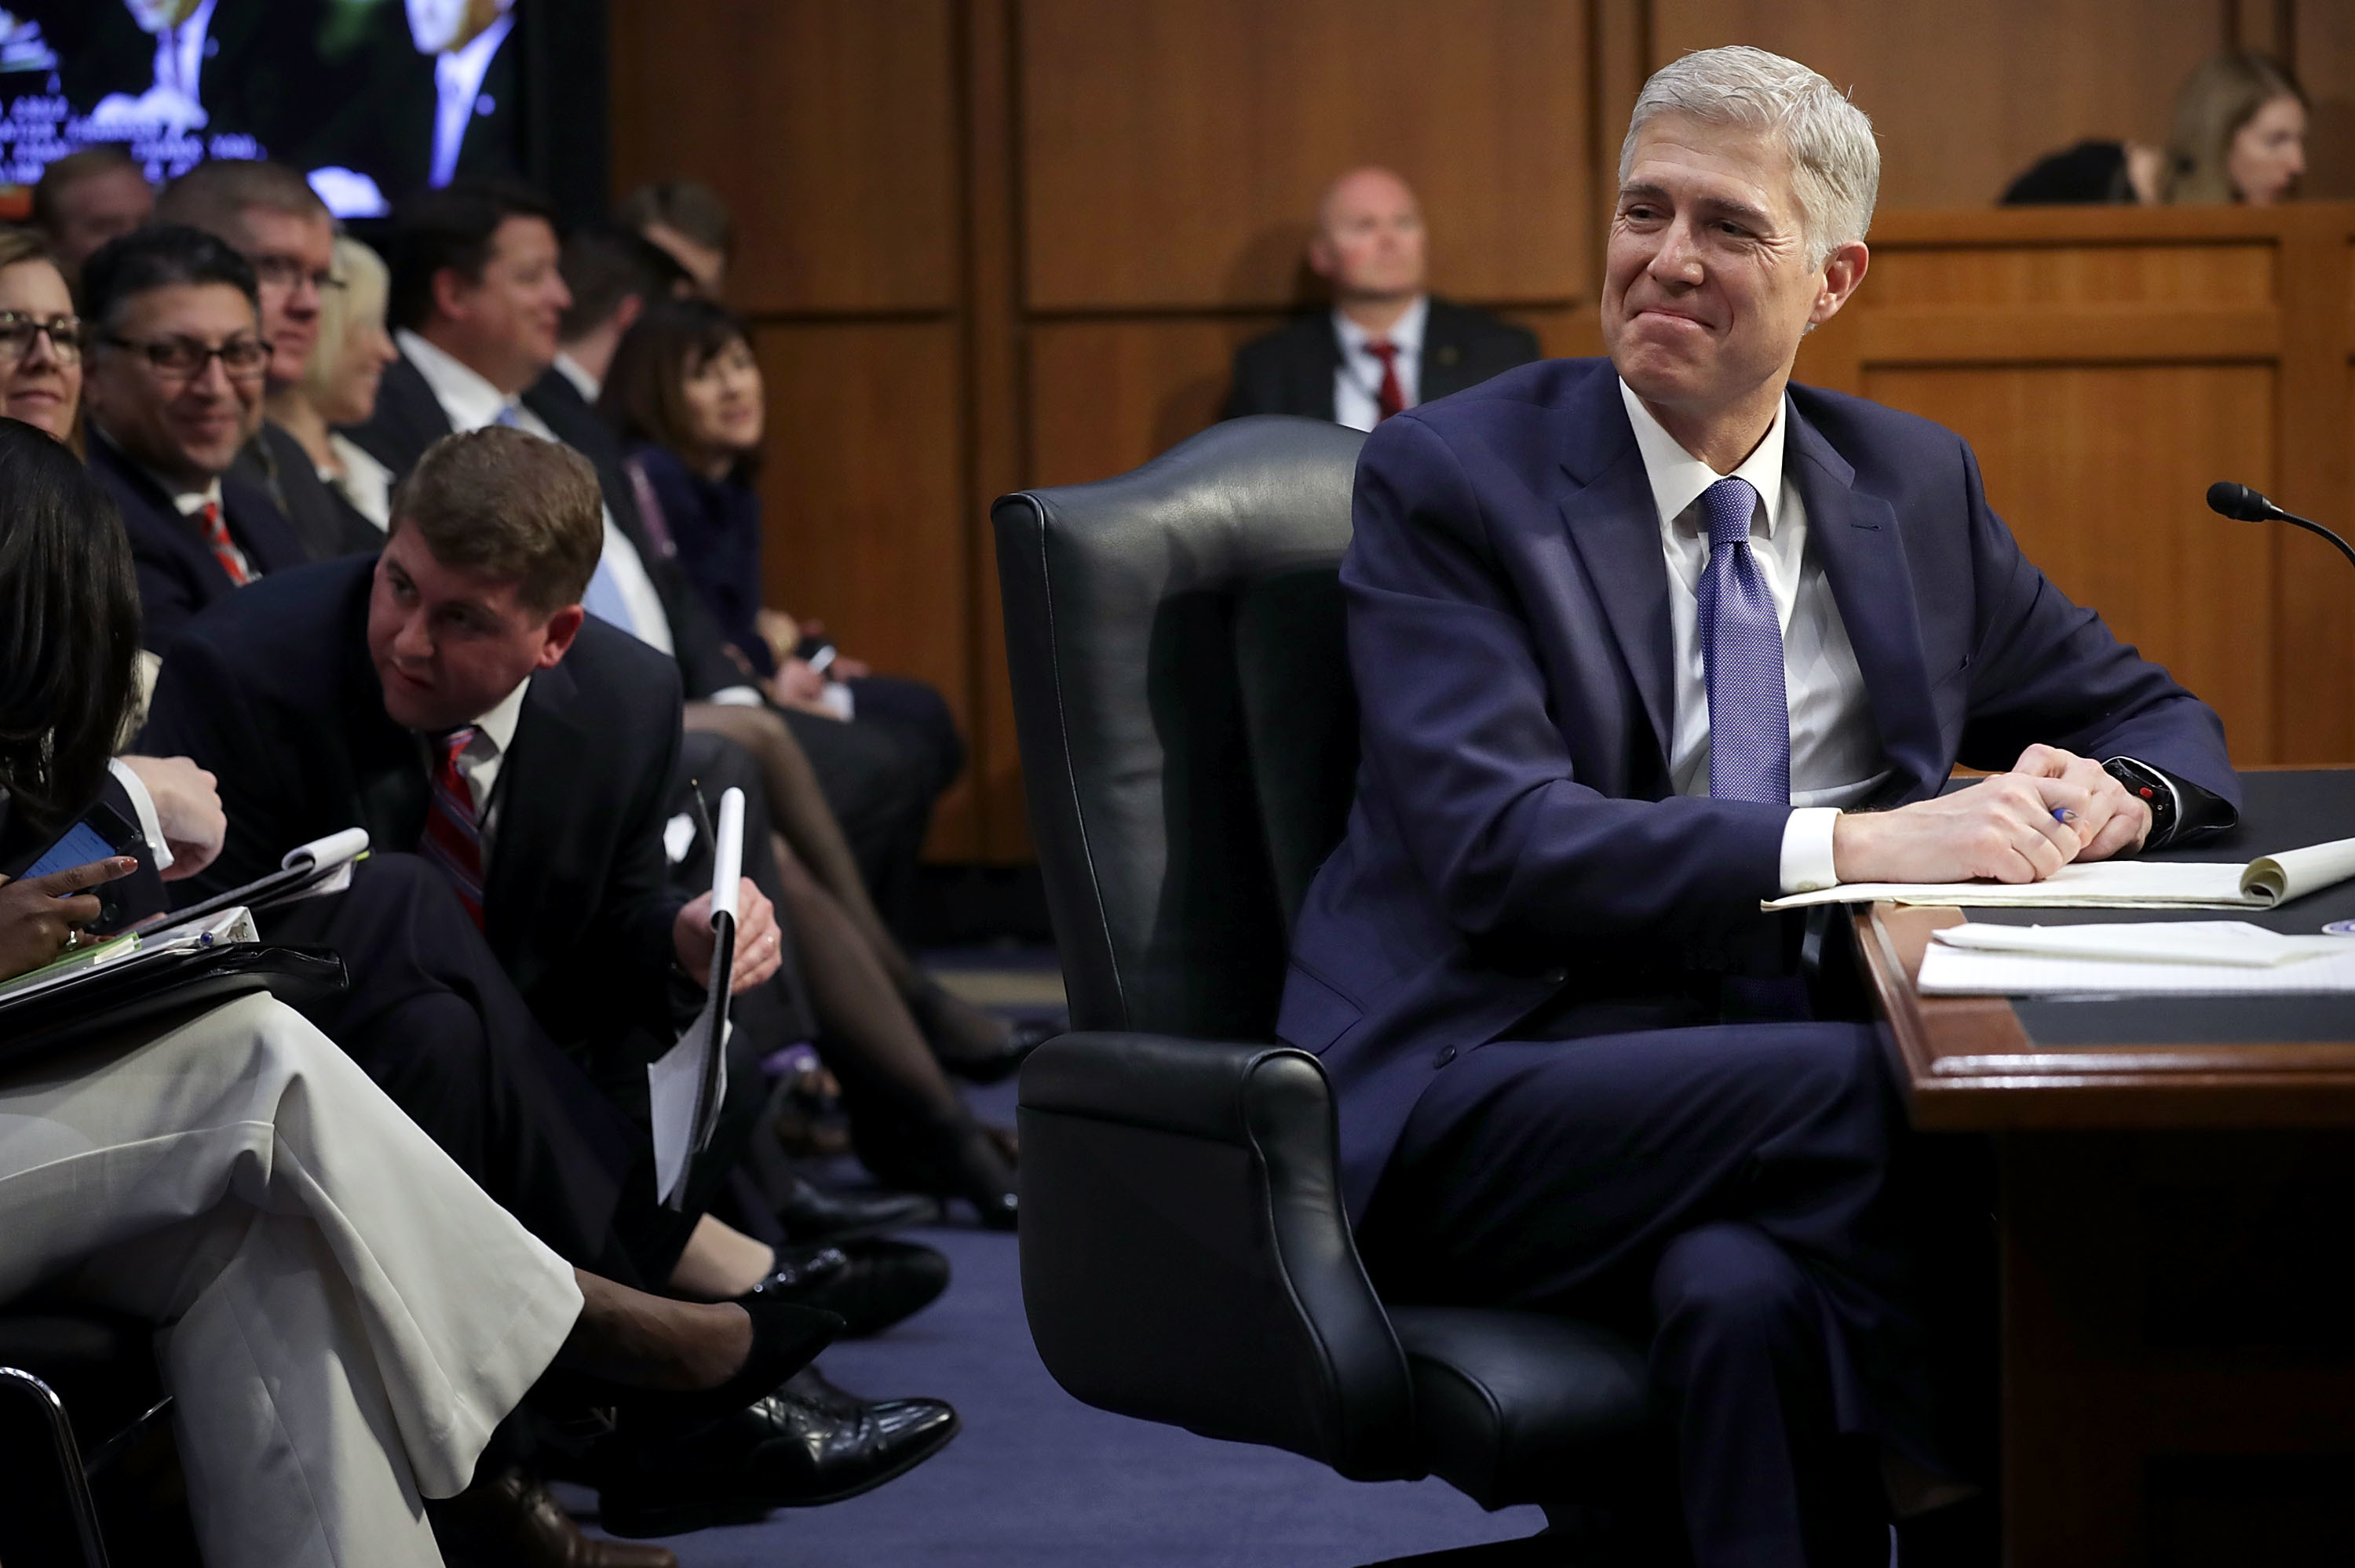 Udall will vote against Gorsuch, says should need 60 votes